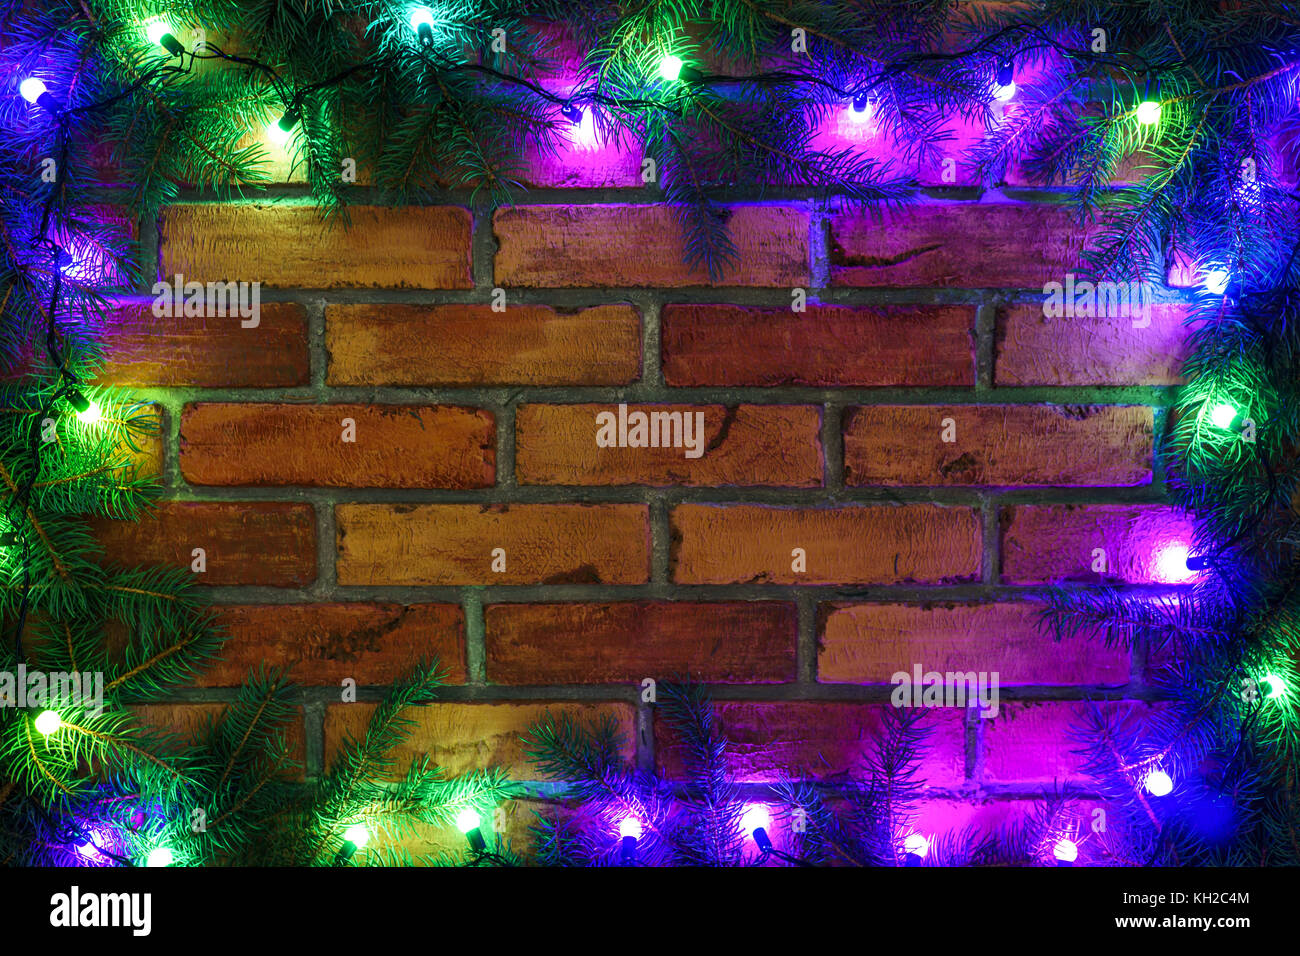 wreath and garlands of colored light bulbschristmas background with lights and free text space christmas lights border glowing colorful christmas l